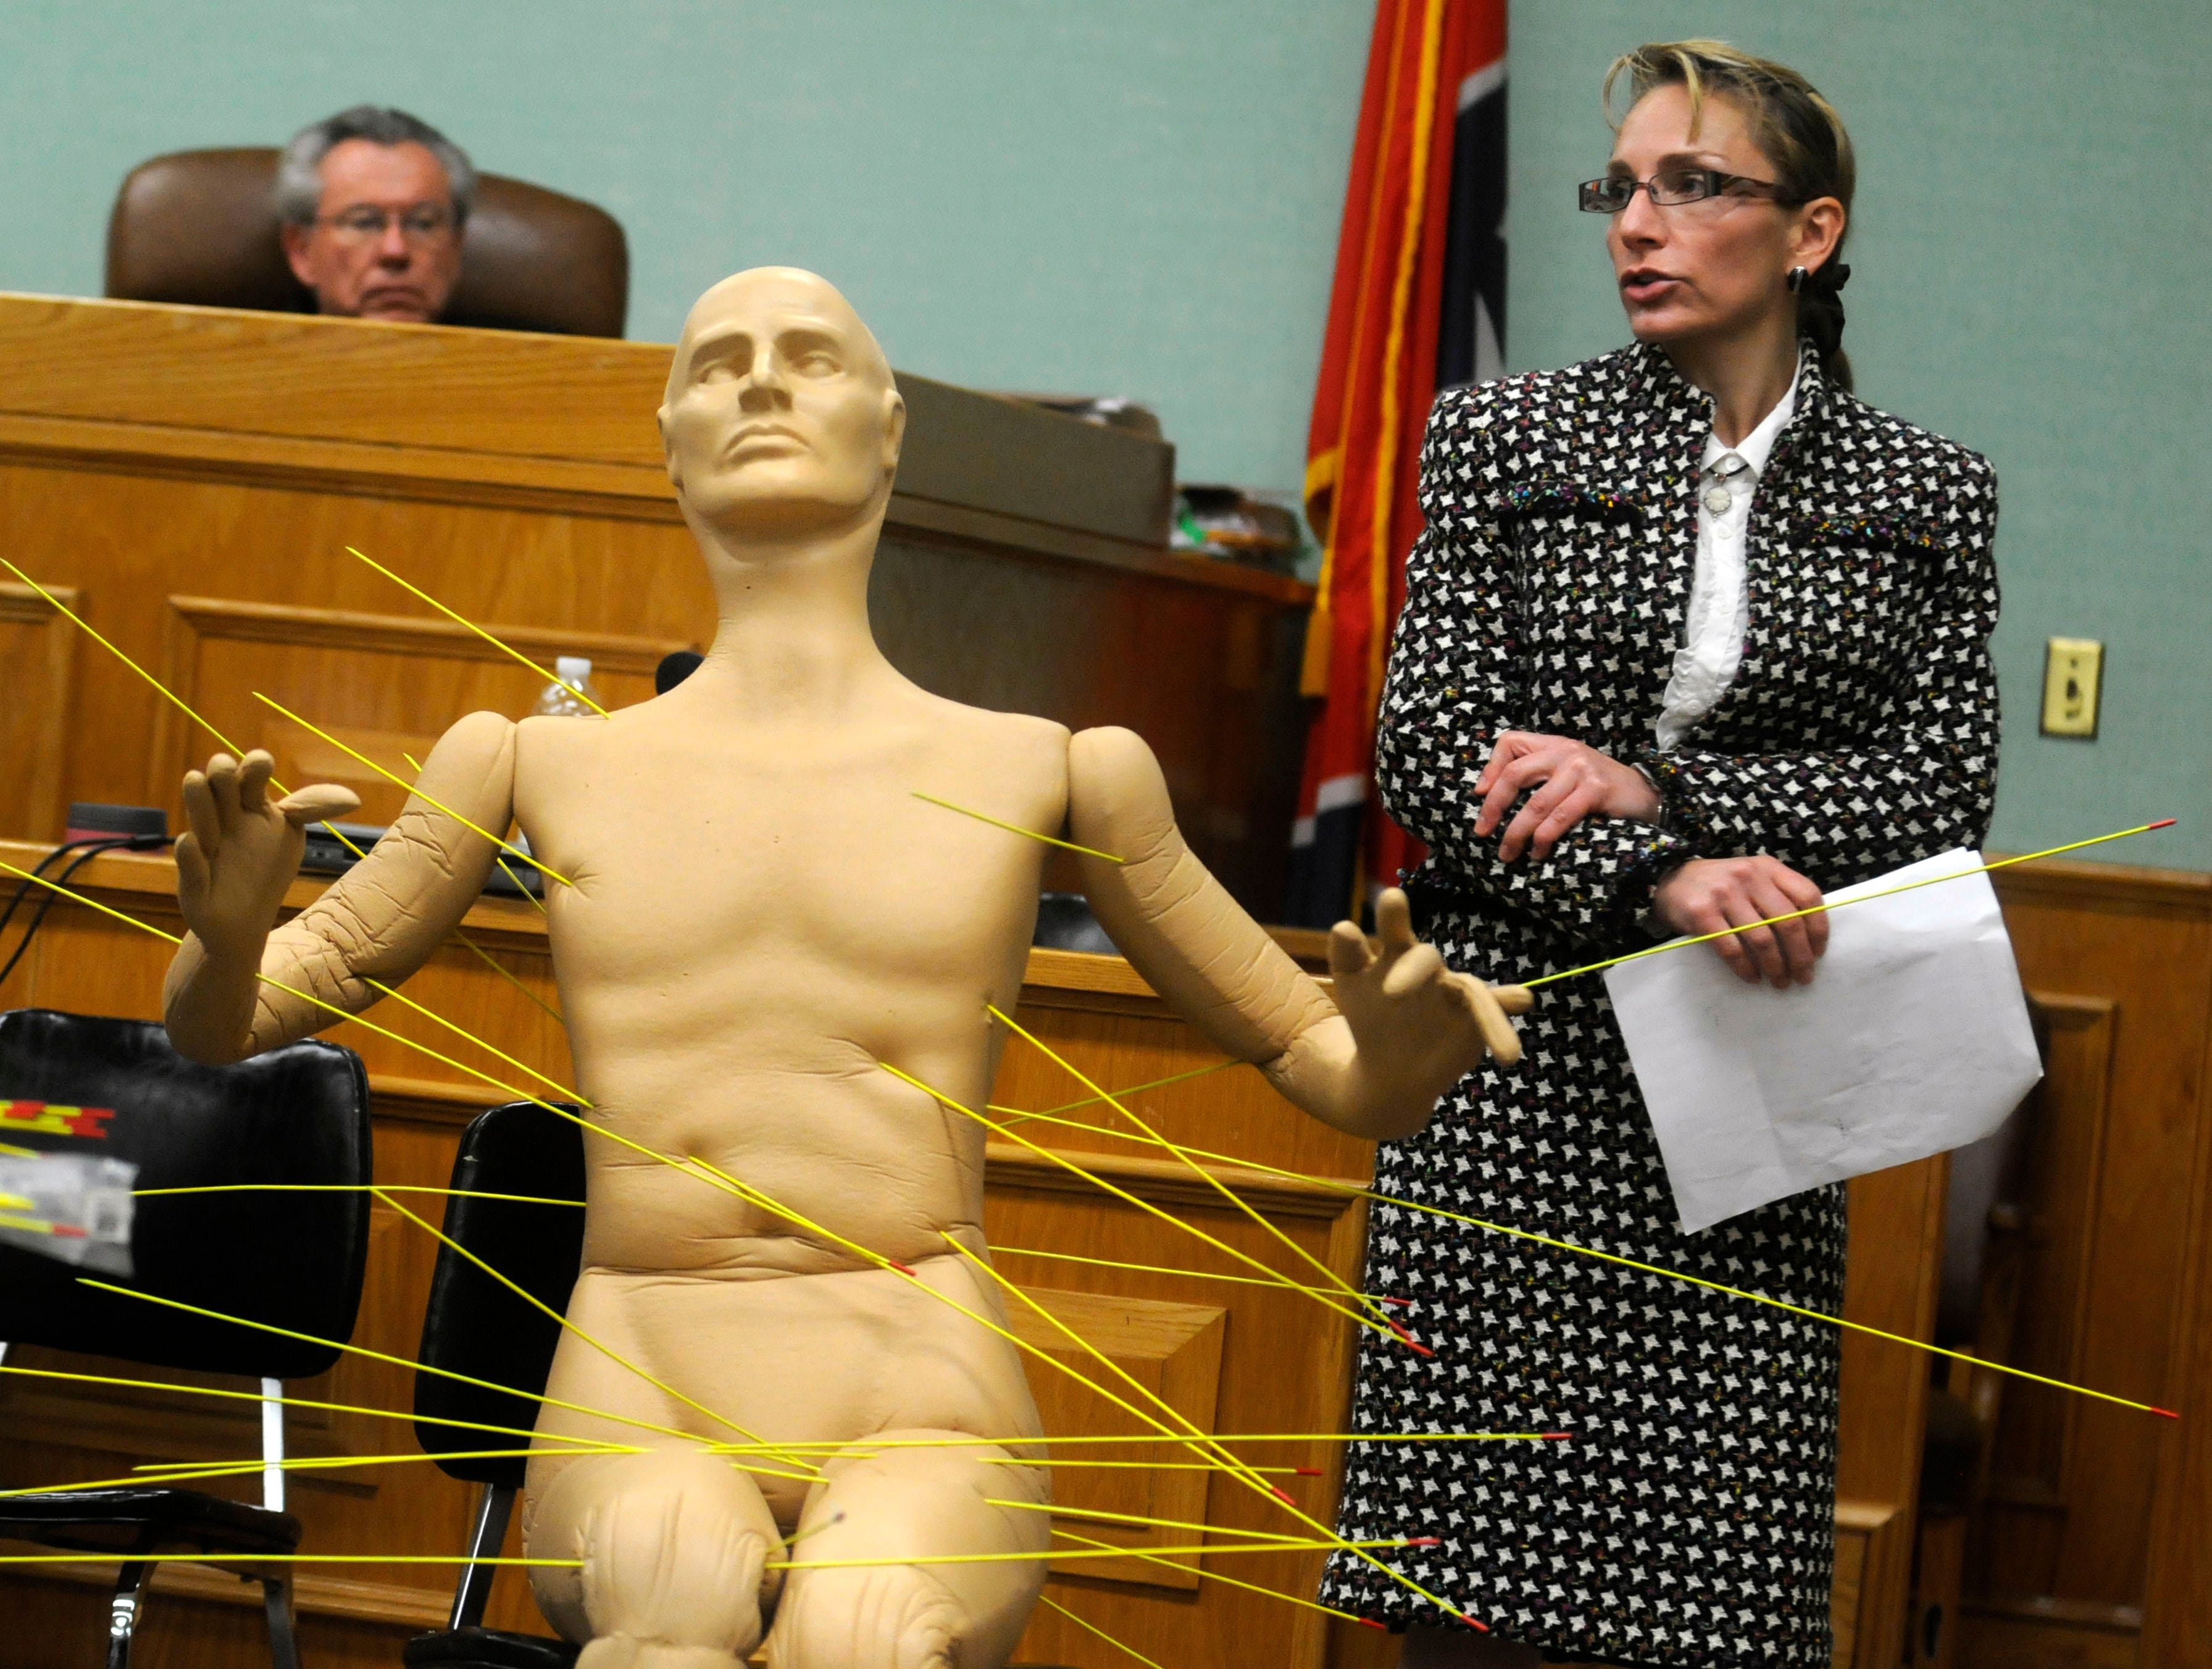 Knox County Chief Medical Examiner Dr. Darinka Mileusnic-Polchan used a mannequin and rods to demonstrate gunshots wounds suffered by Deputy Bill Jones during the double murder re-trial of Leon Houston Tuesday, Nov 10, 2009 in Roane County Circuit Court. Houston is accused of the May 2006 ambush murders of Jones and his ride-along friend Gerald Michael Brown.